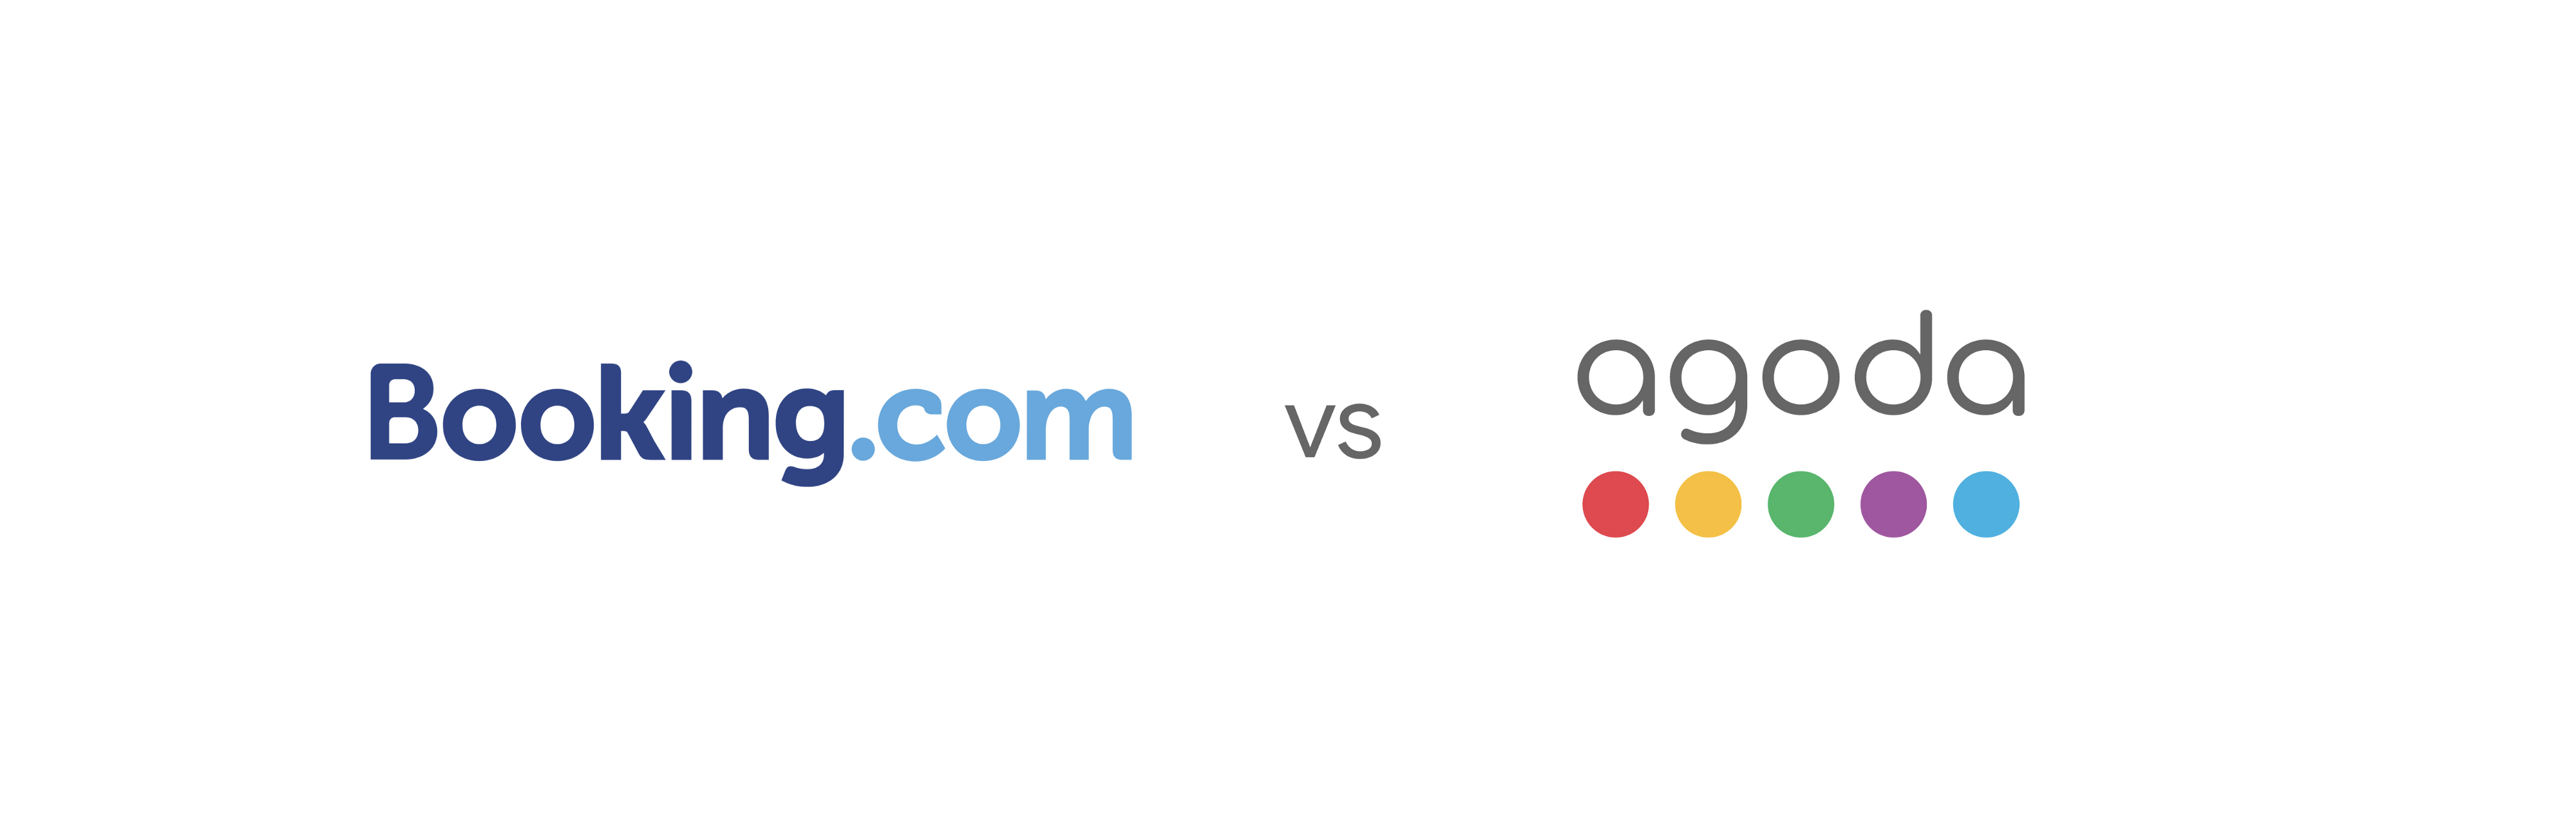 Booking and Agoda's Logos, side by side